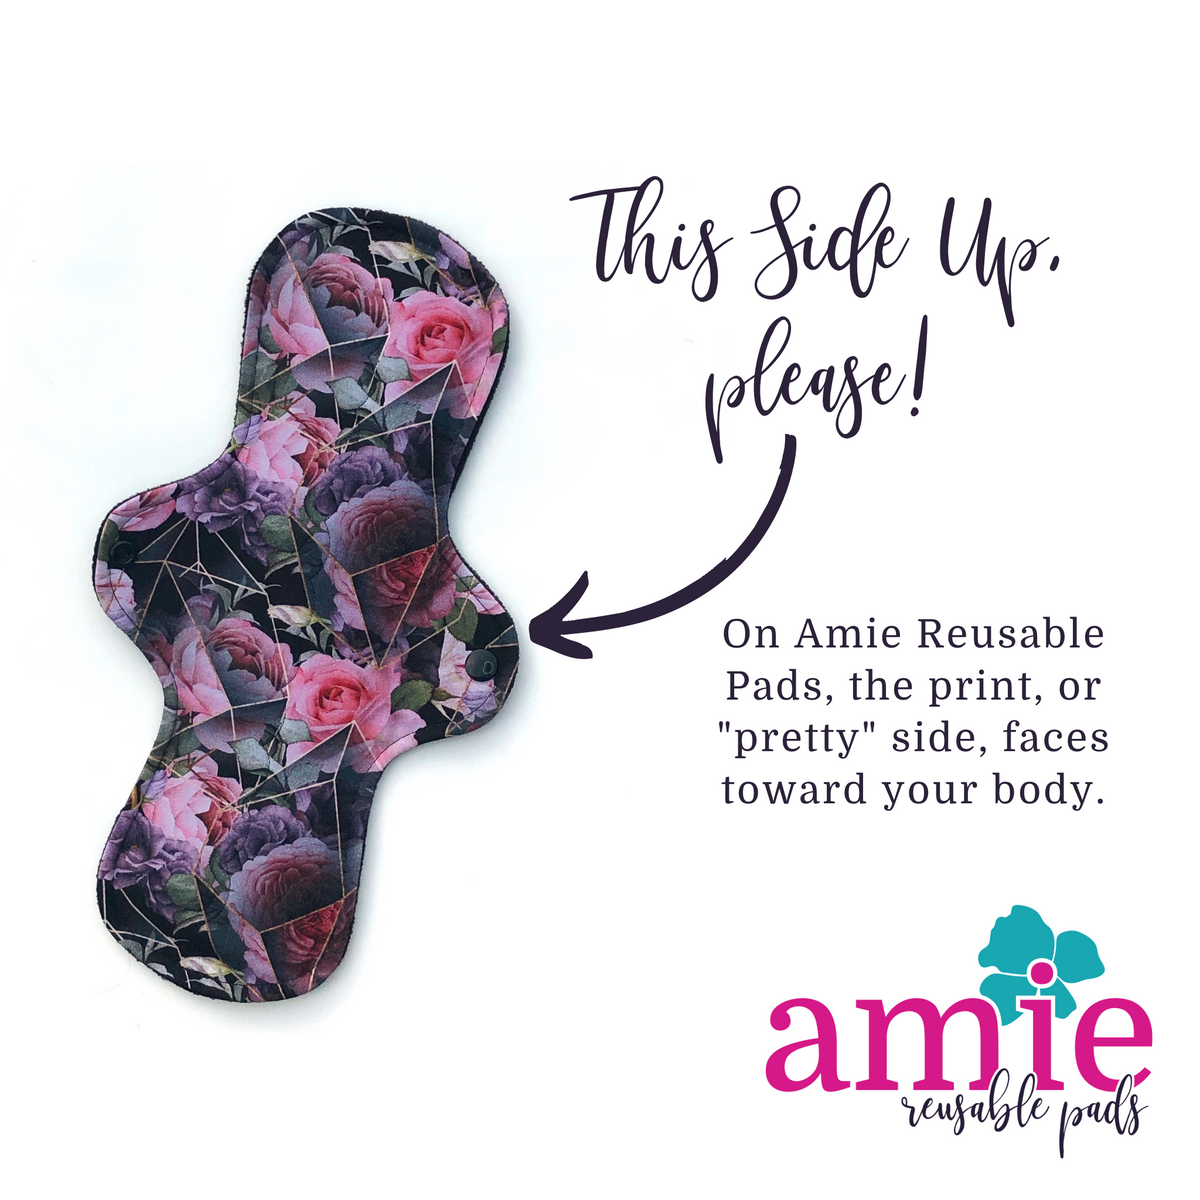 Instruction for showing the pretty-side faces up toward your body when using an Amie reusable cloth pads